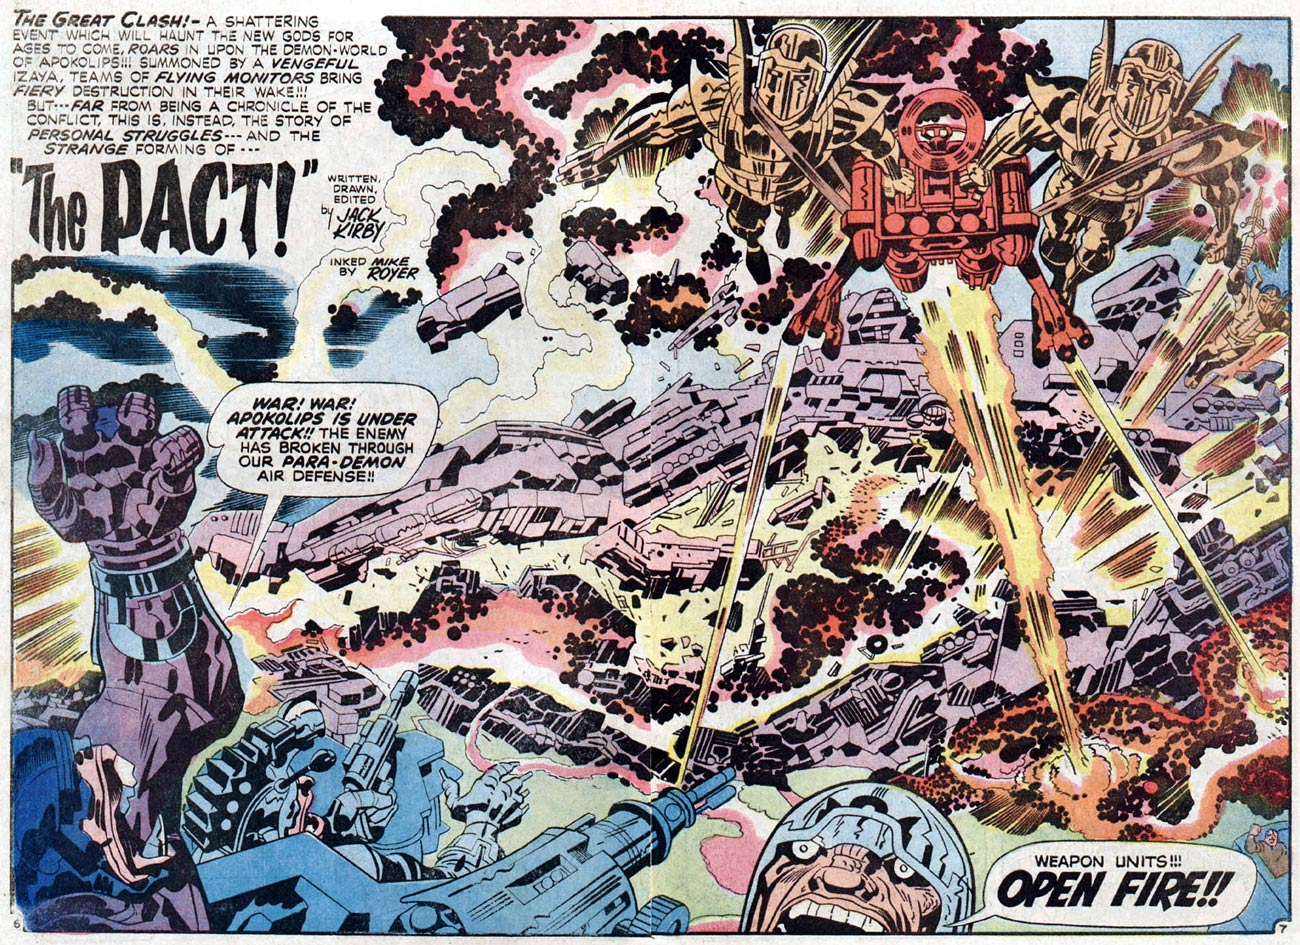 The New Gods by Jack Kirby